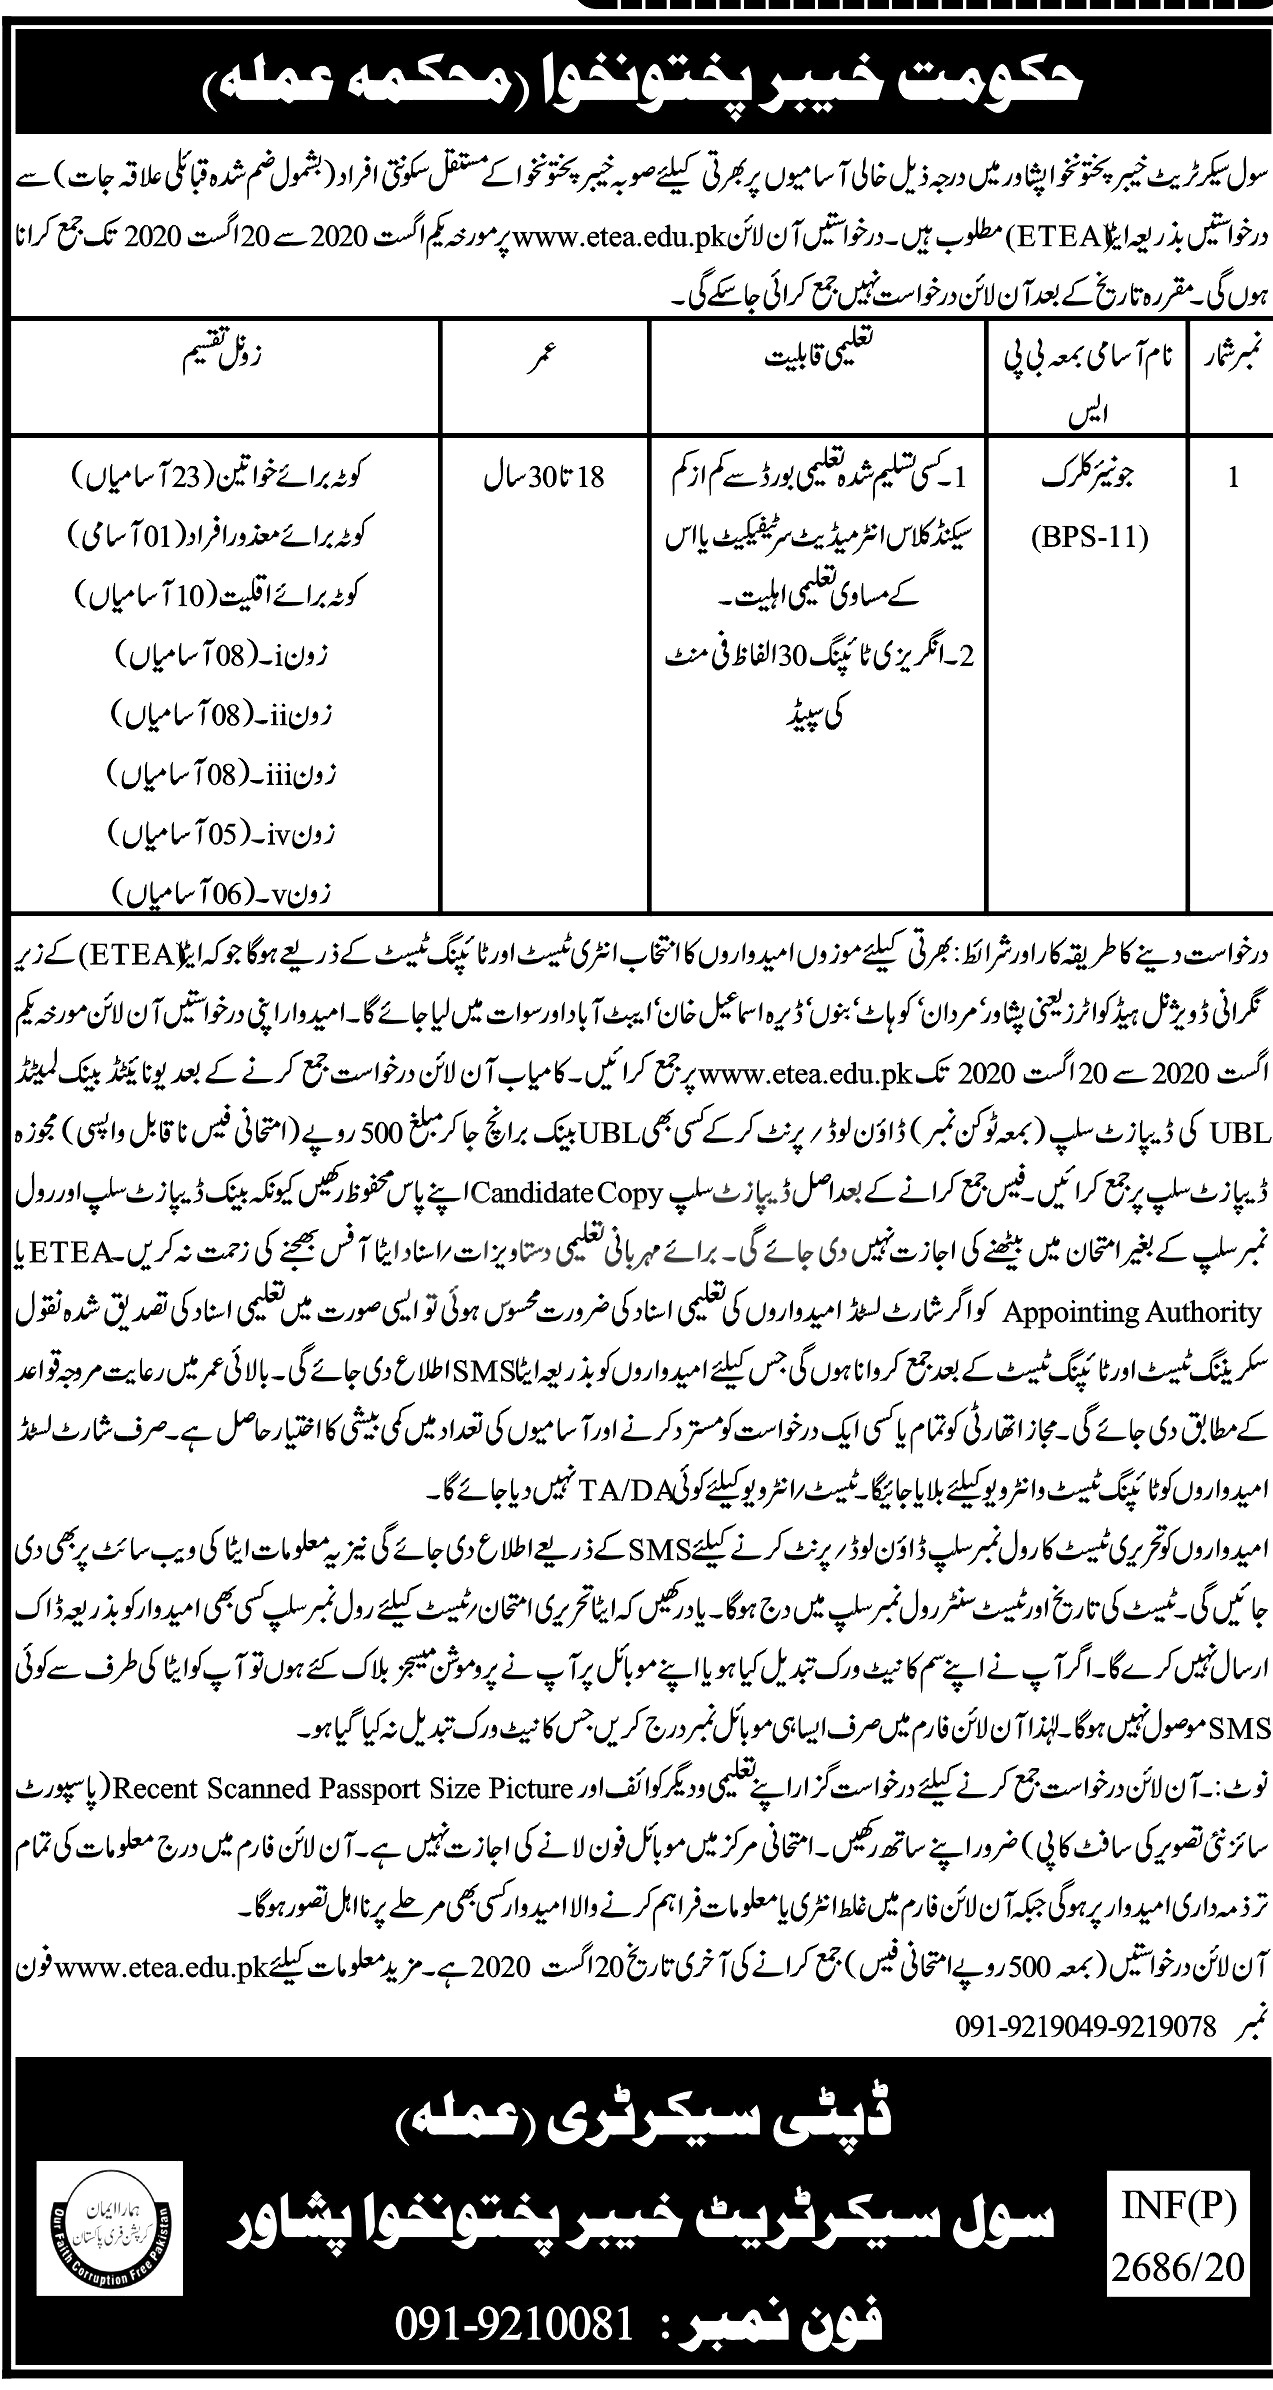 Civil Secretariat of KPK ETEA Jobs 2020 Application Form Roll No Slip